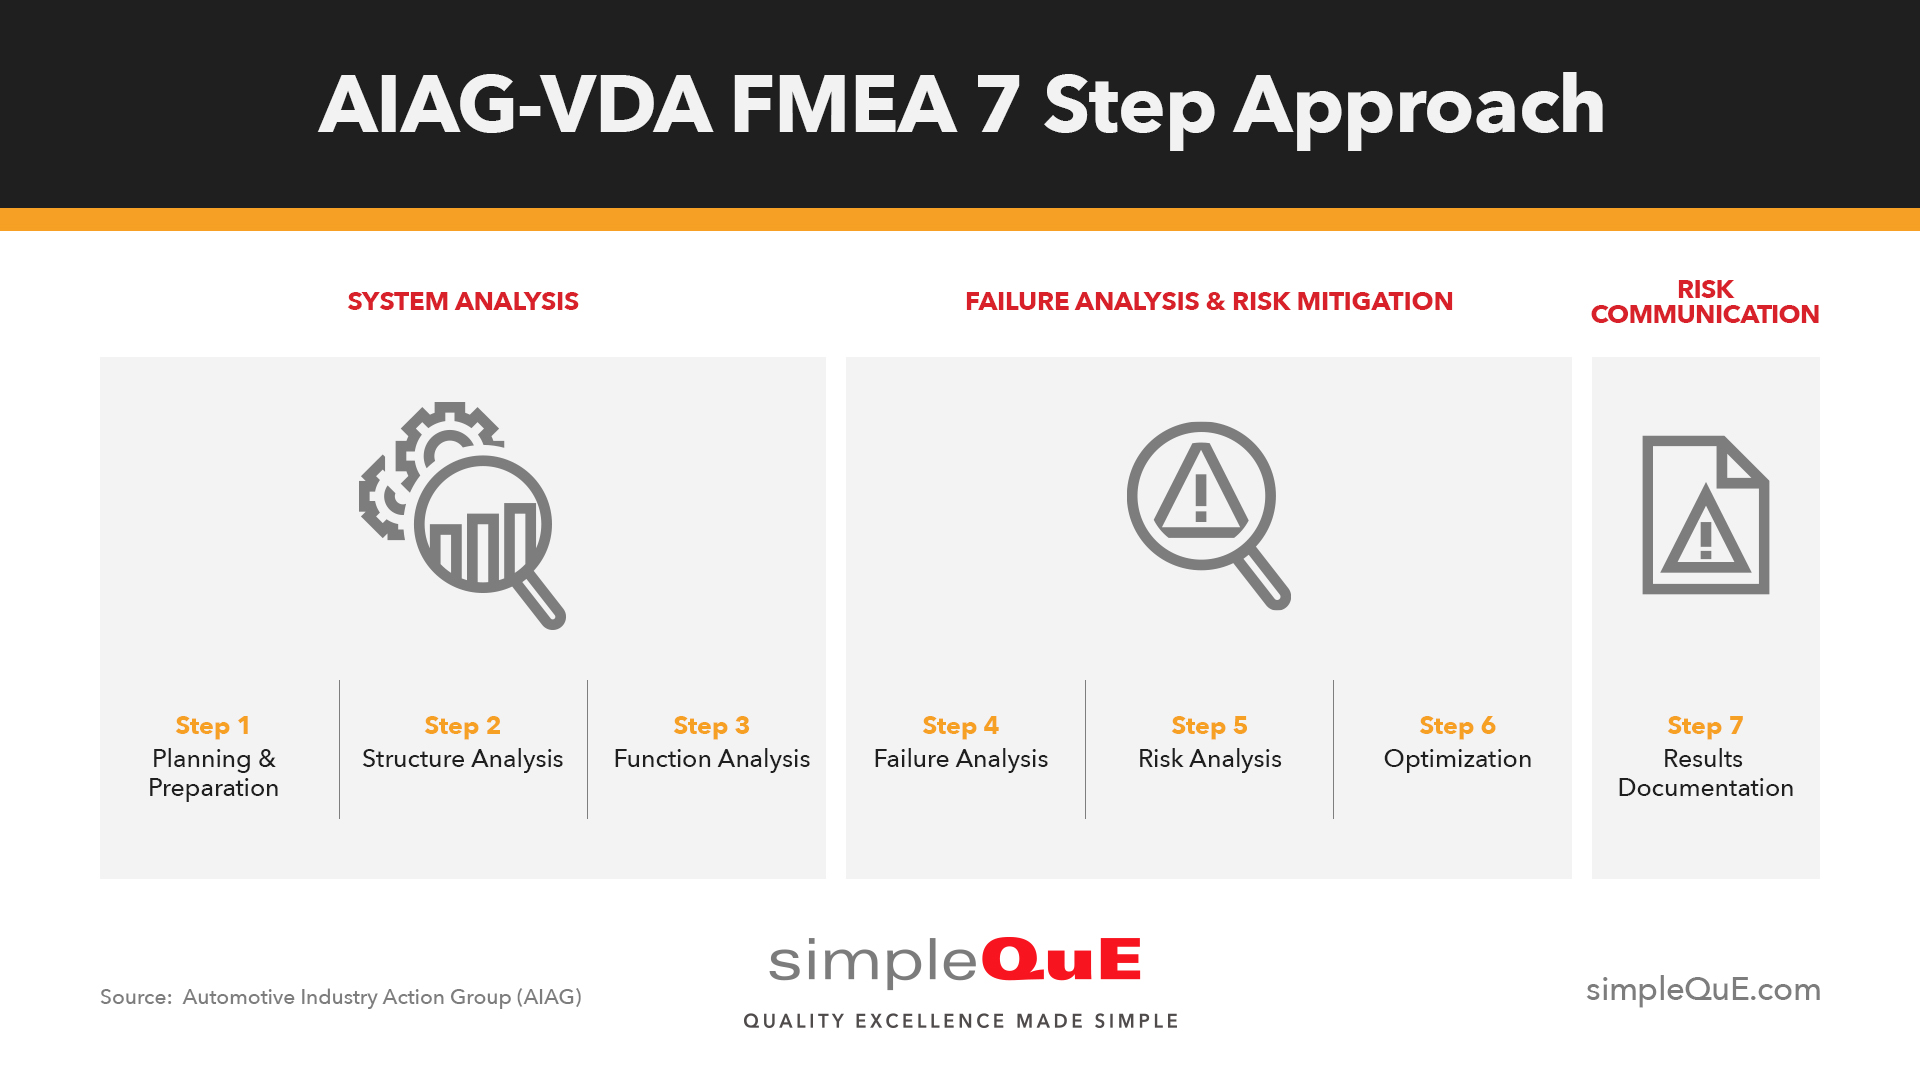 Coming Soon: The AIAG & VDA FMEA Handbook